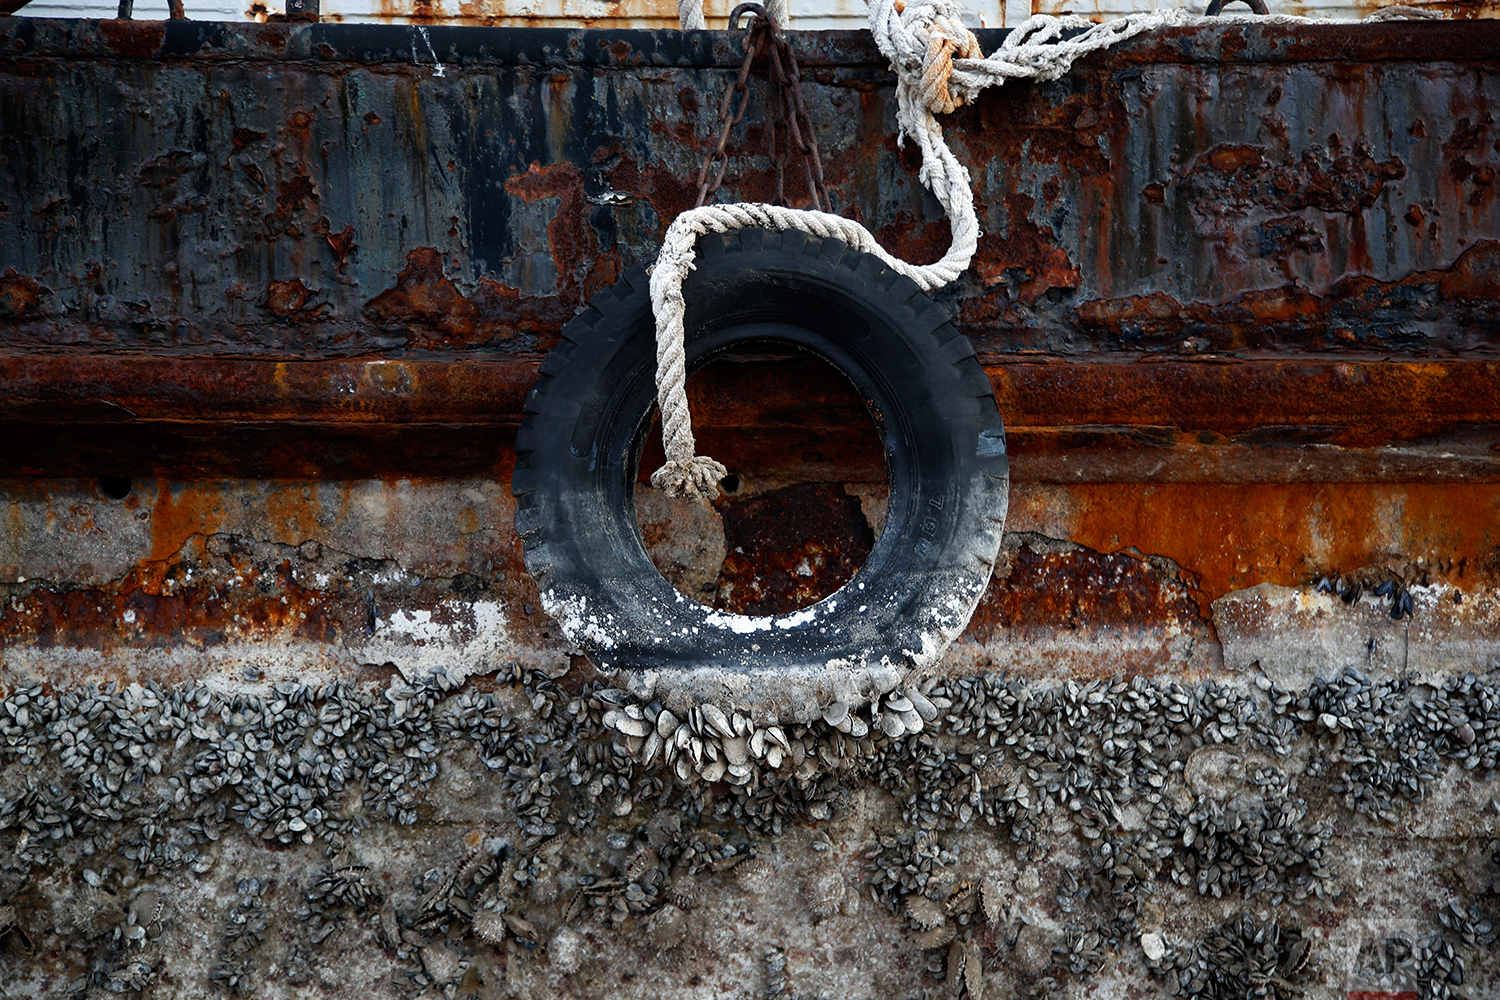 In this Tuesday, Nov. 13, 2018 photo, a small boat, that was recovered after spending years as a shipwreck is photographed at a dock in Elefsina, west of Athens. (AP Photo/Thanassis Stavrakis)